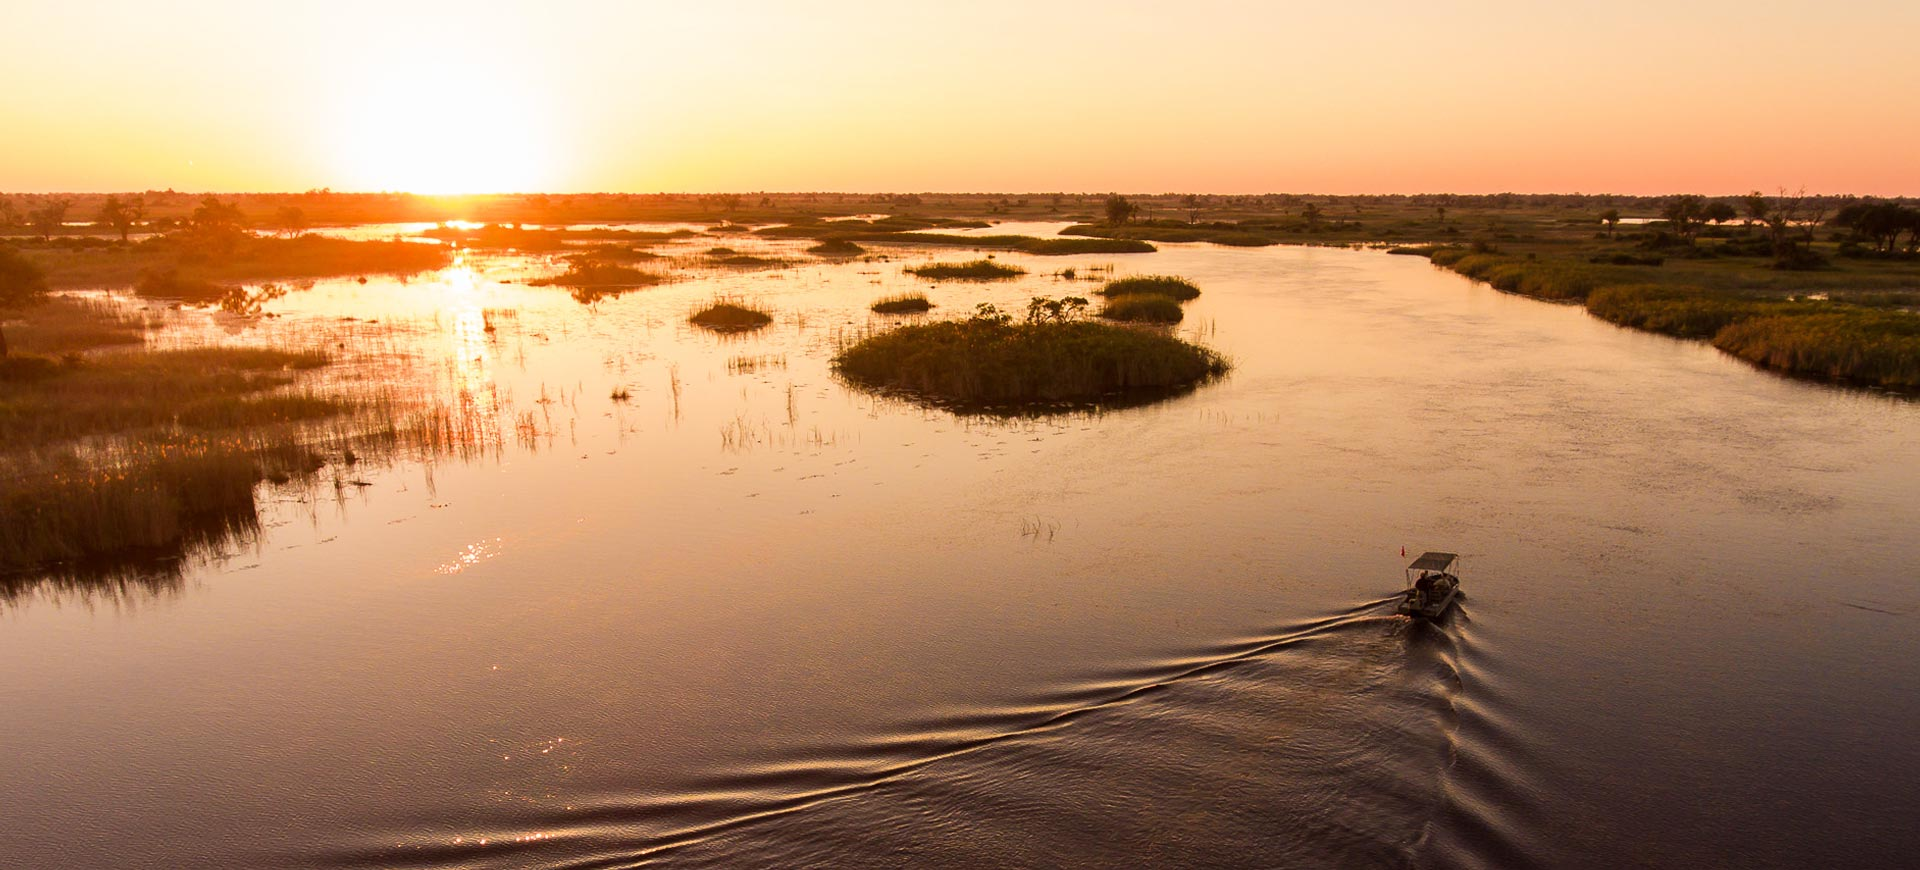 Okavango River Cruises